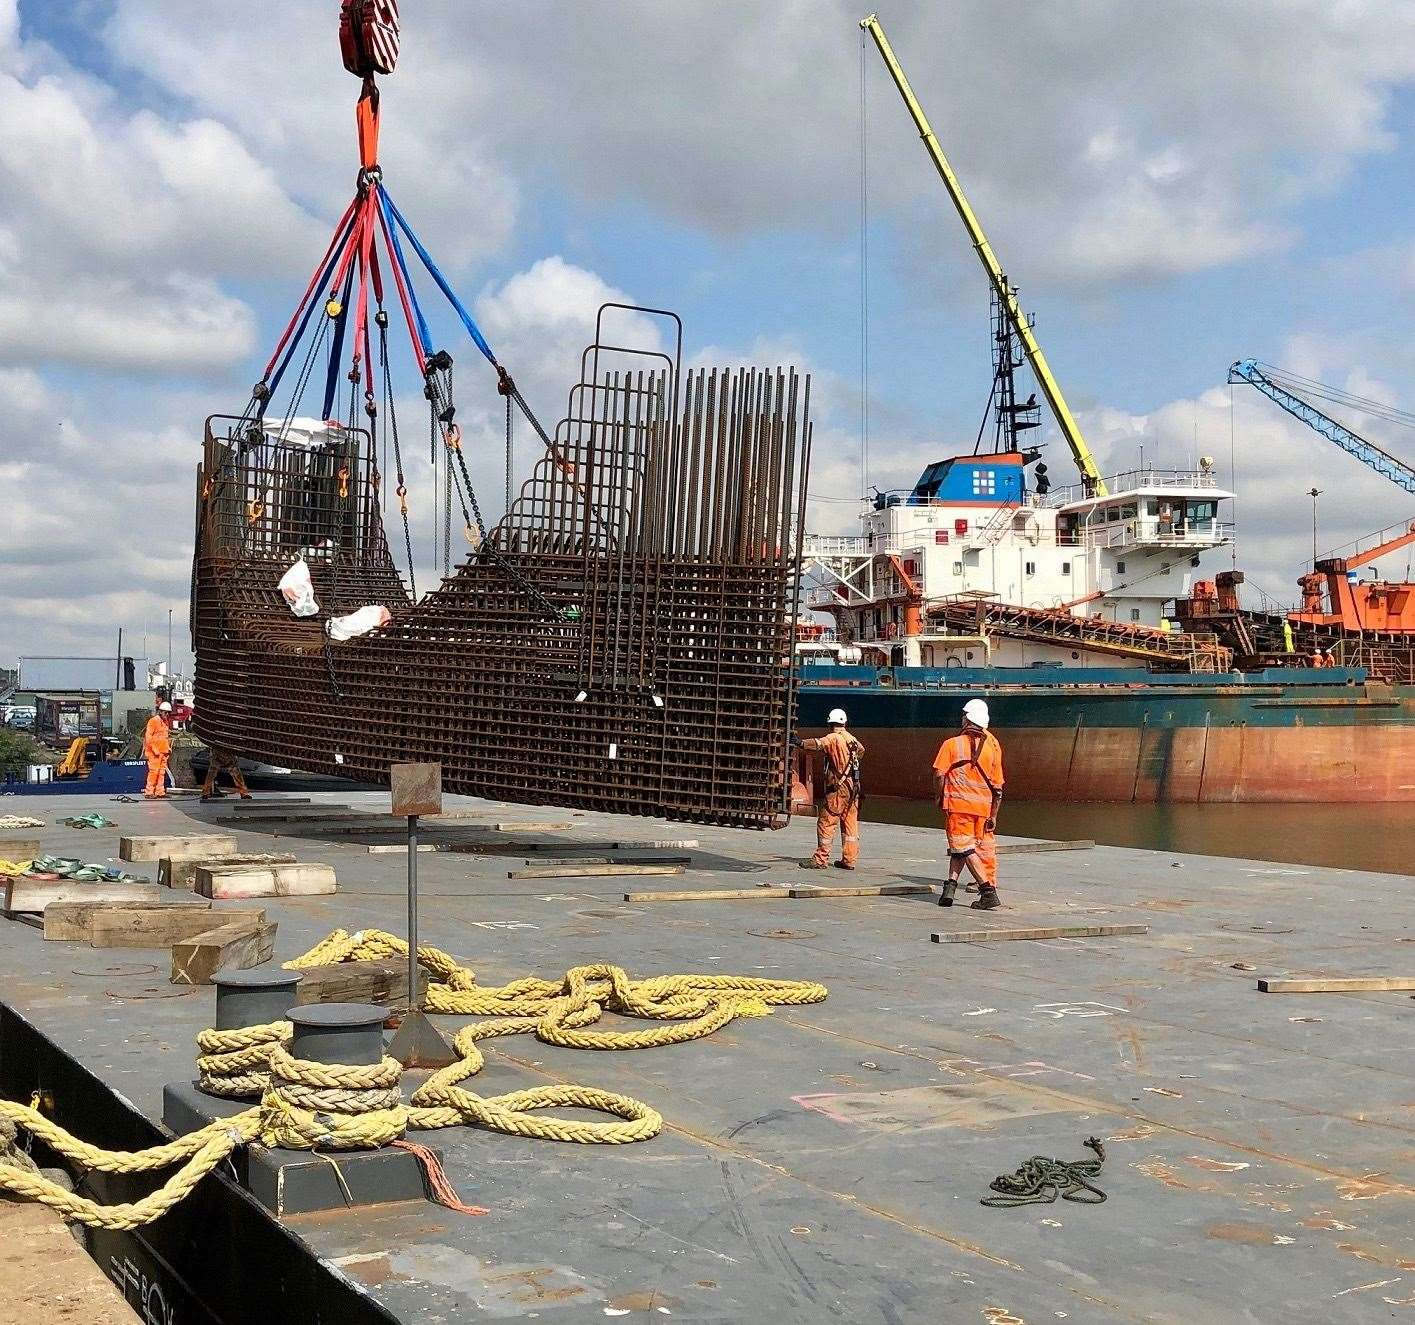 Chatham Docks are set for closure in 2025. Picture: Association of Chatham Docks Commercial Operators